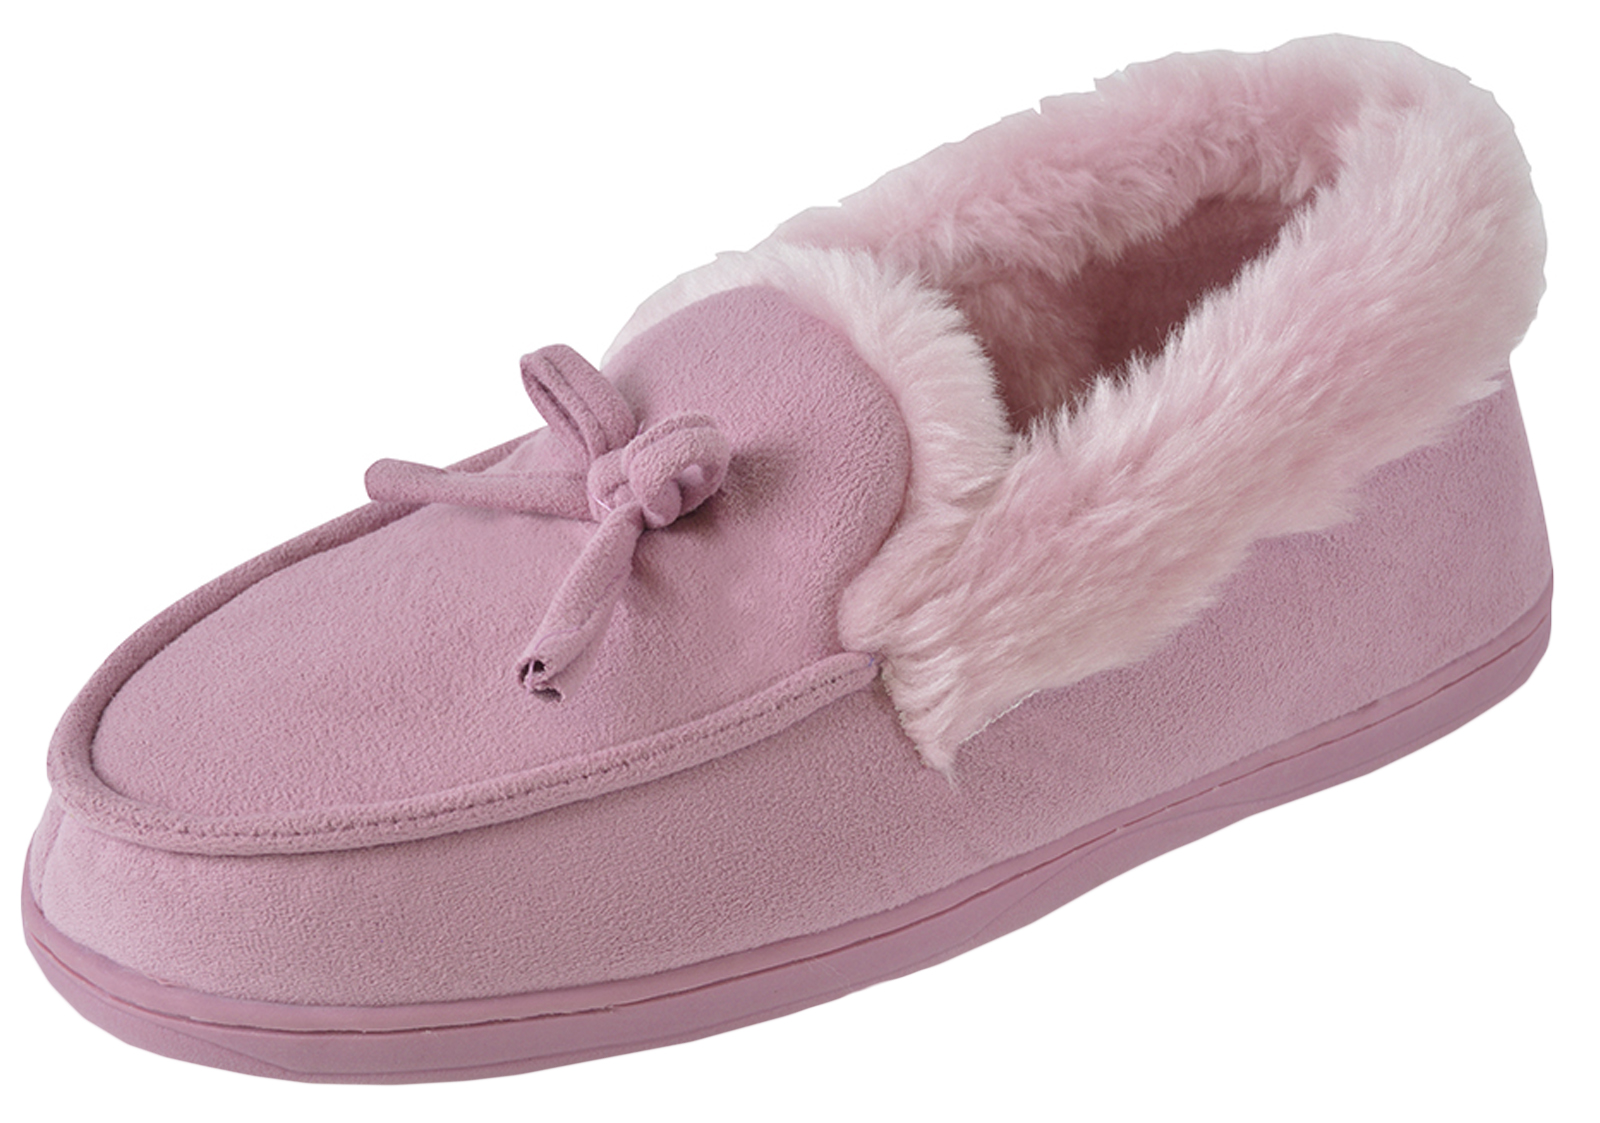 1d9ed8b8ba3d5 Womens Luxury Faux Fur Lined Moccasins Ladies Comfort Slippers Xmas ...